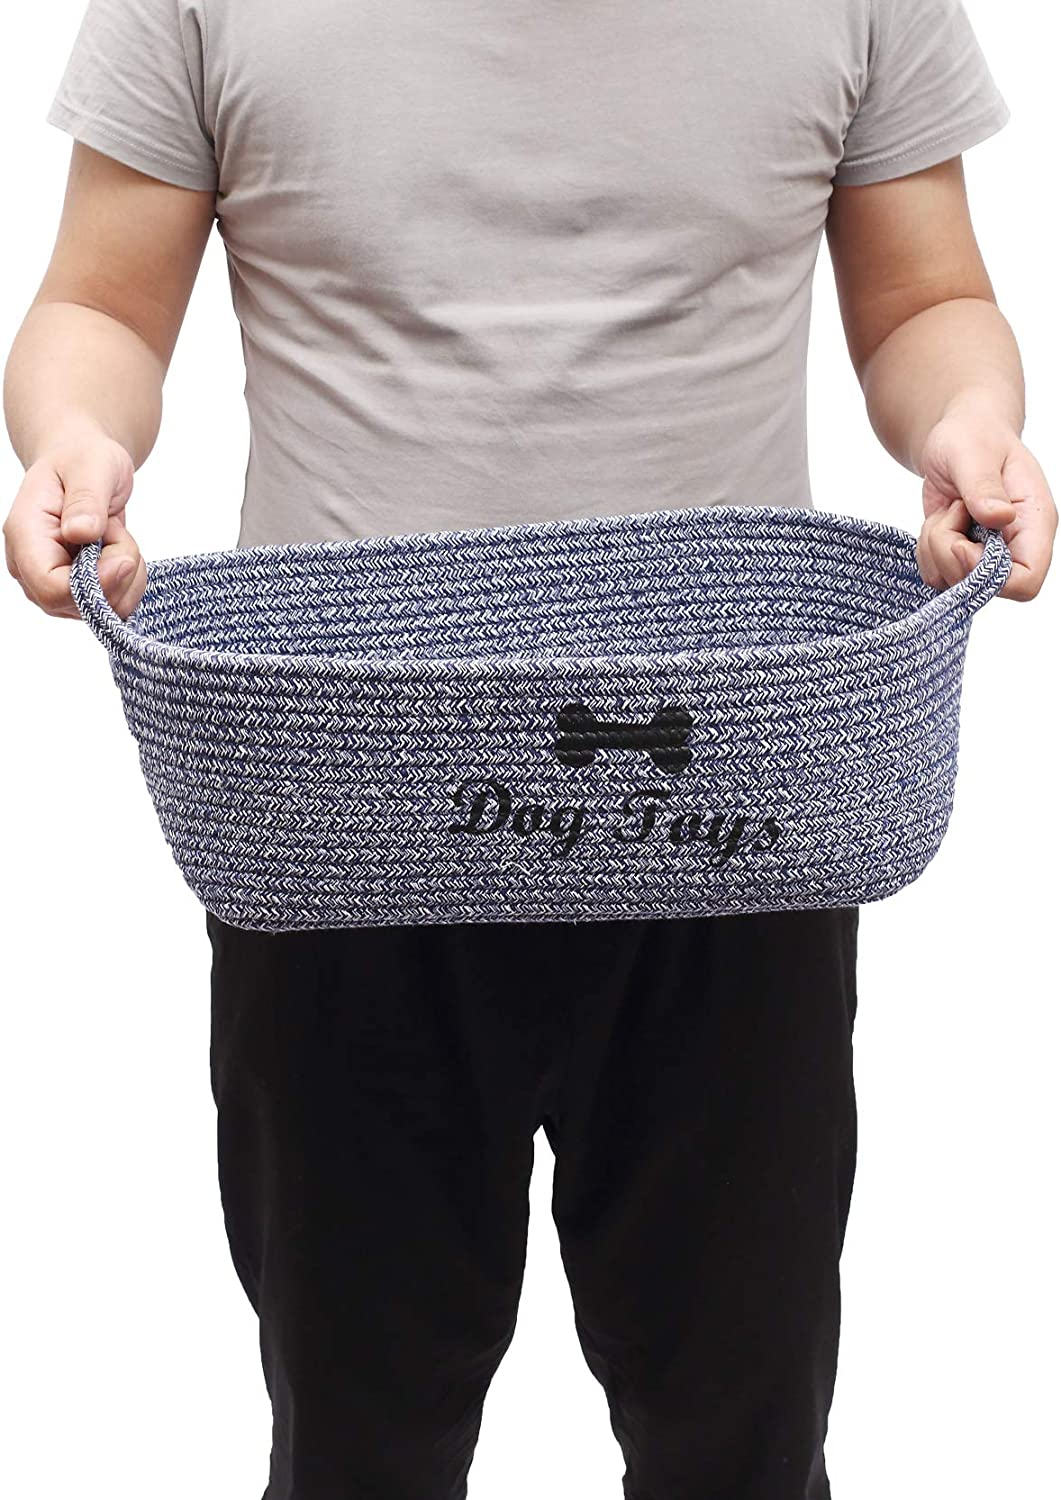 Blankets Pee mats pet Toy Boxes- Perfect for organizing pet Toys pet Bed Coats Diaper Brabtod Cotton Rope Dog Toy Basket with Handle pet Toy Storage Basket